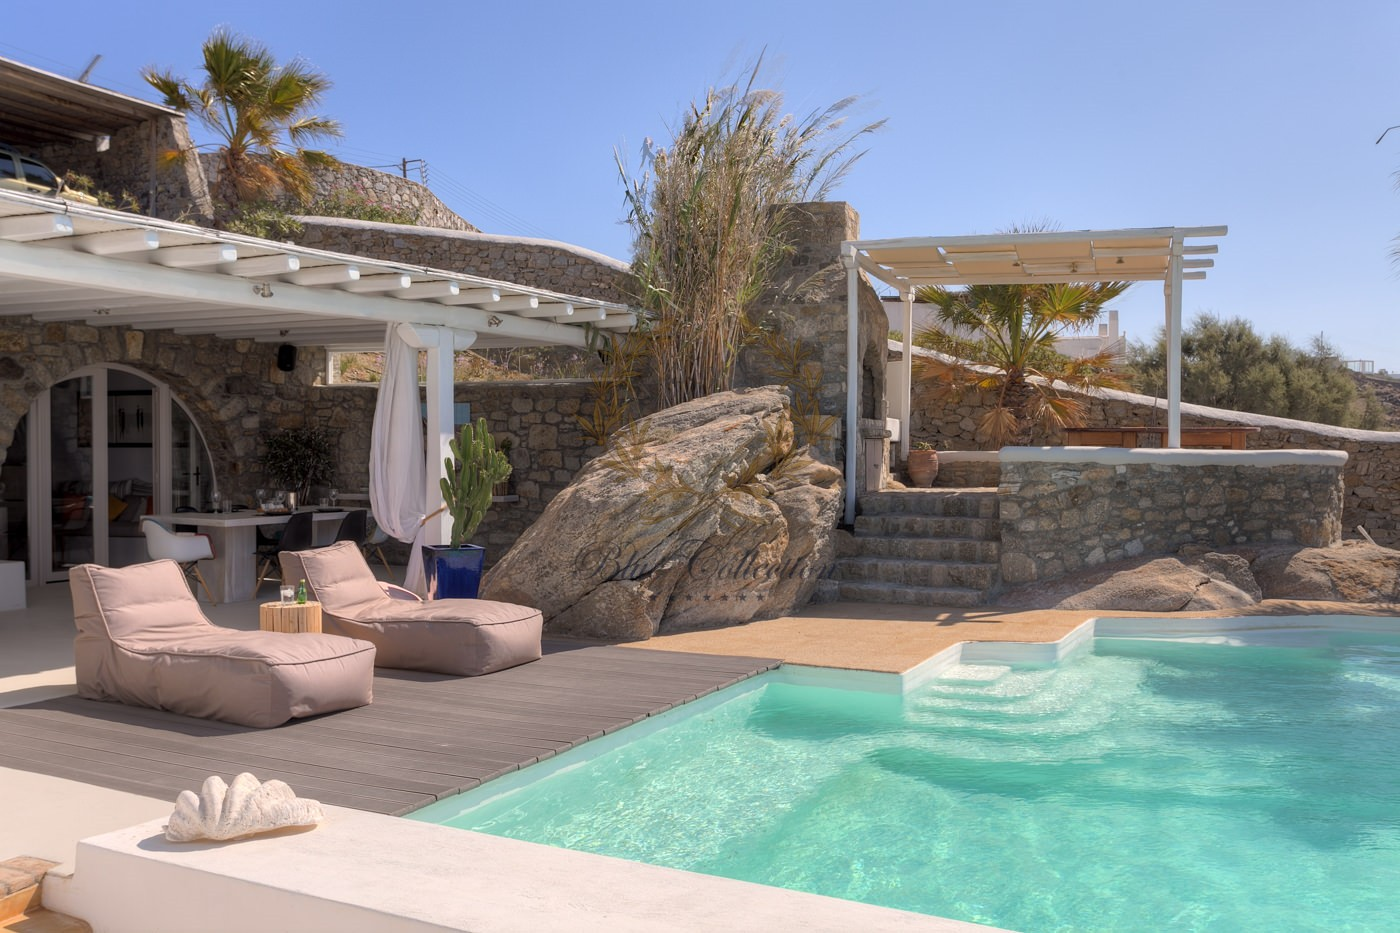 Best Island Beaches For Partying Mykonos St Barts: Greece , Private Villa With Pool For Rent